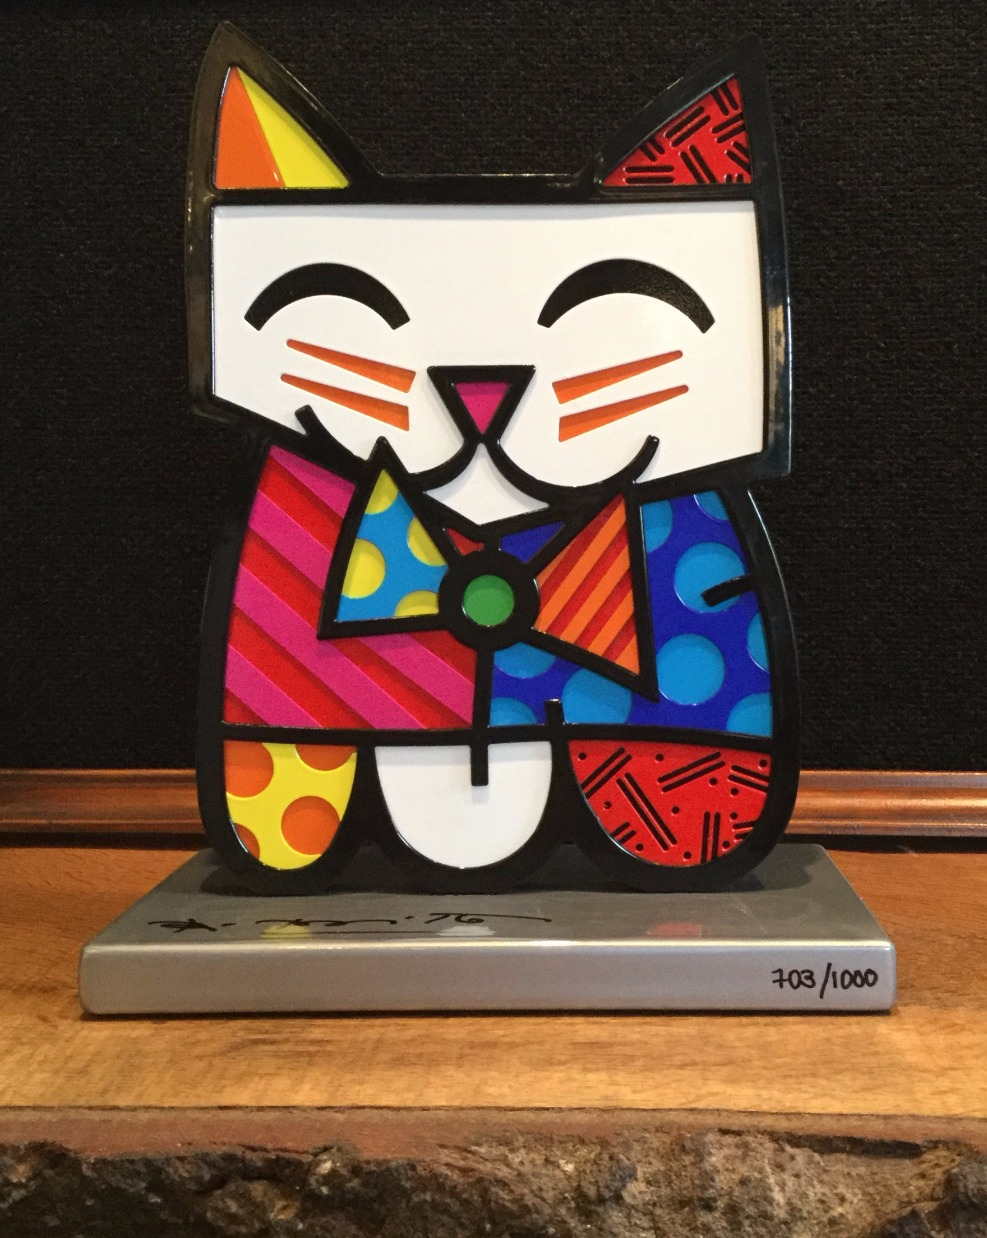 Squeak by Romero Britto, Family | Animals | Cat | Sculpture